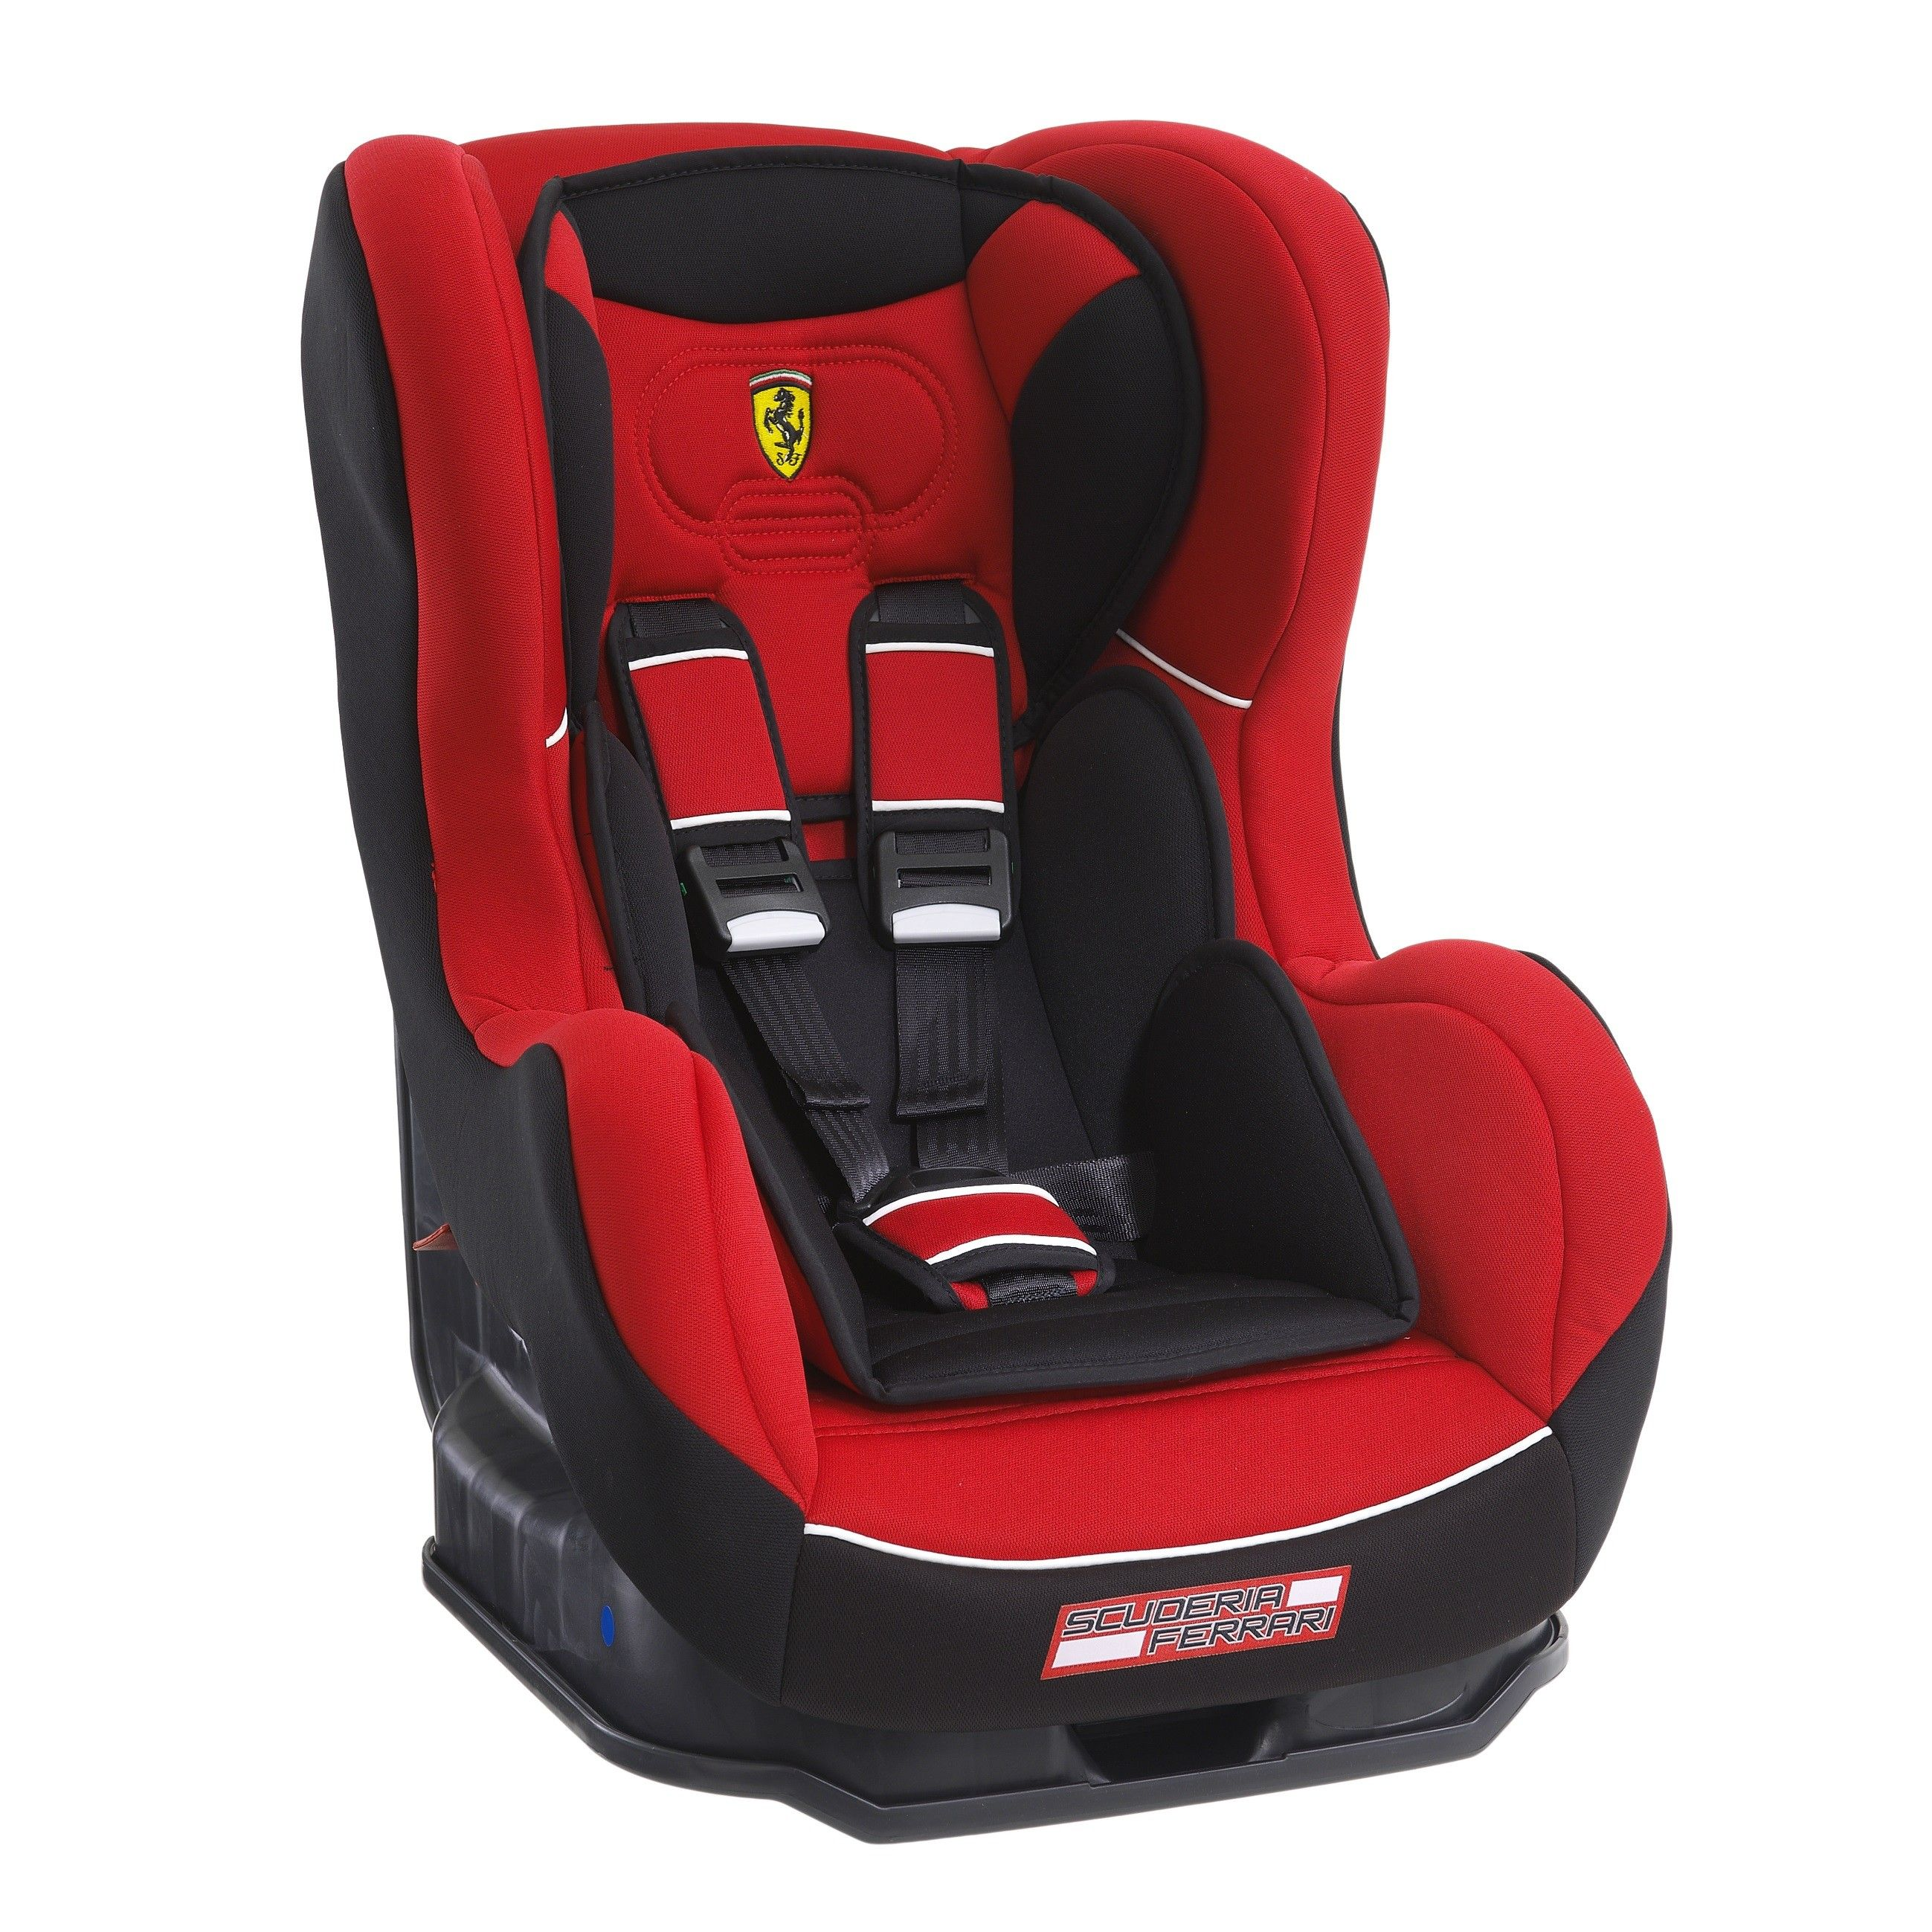 Ferrari baby seat Cosmo SP. Shopping